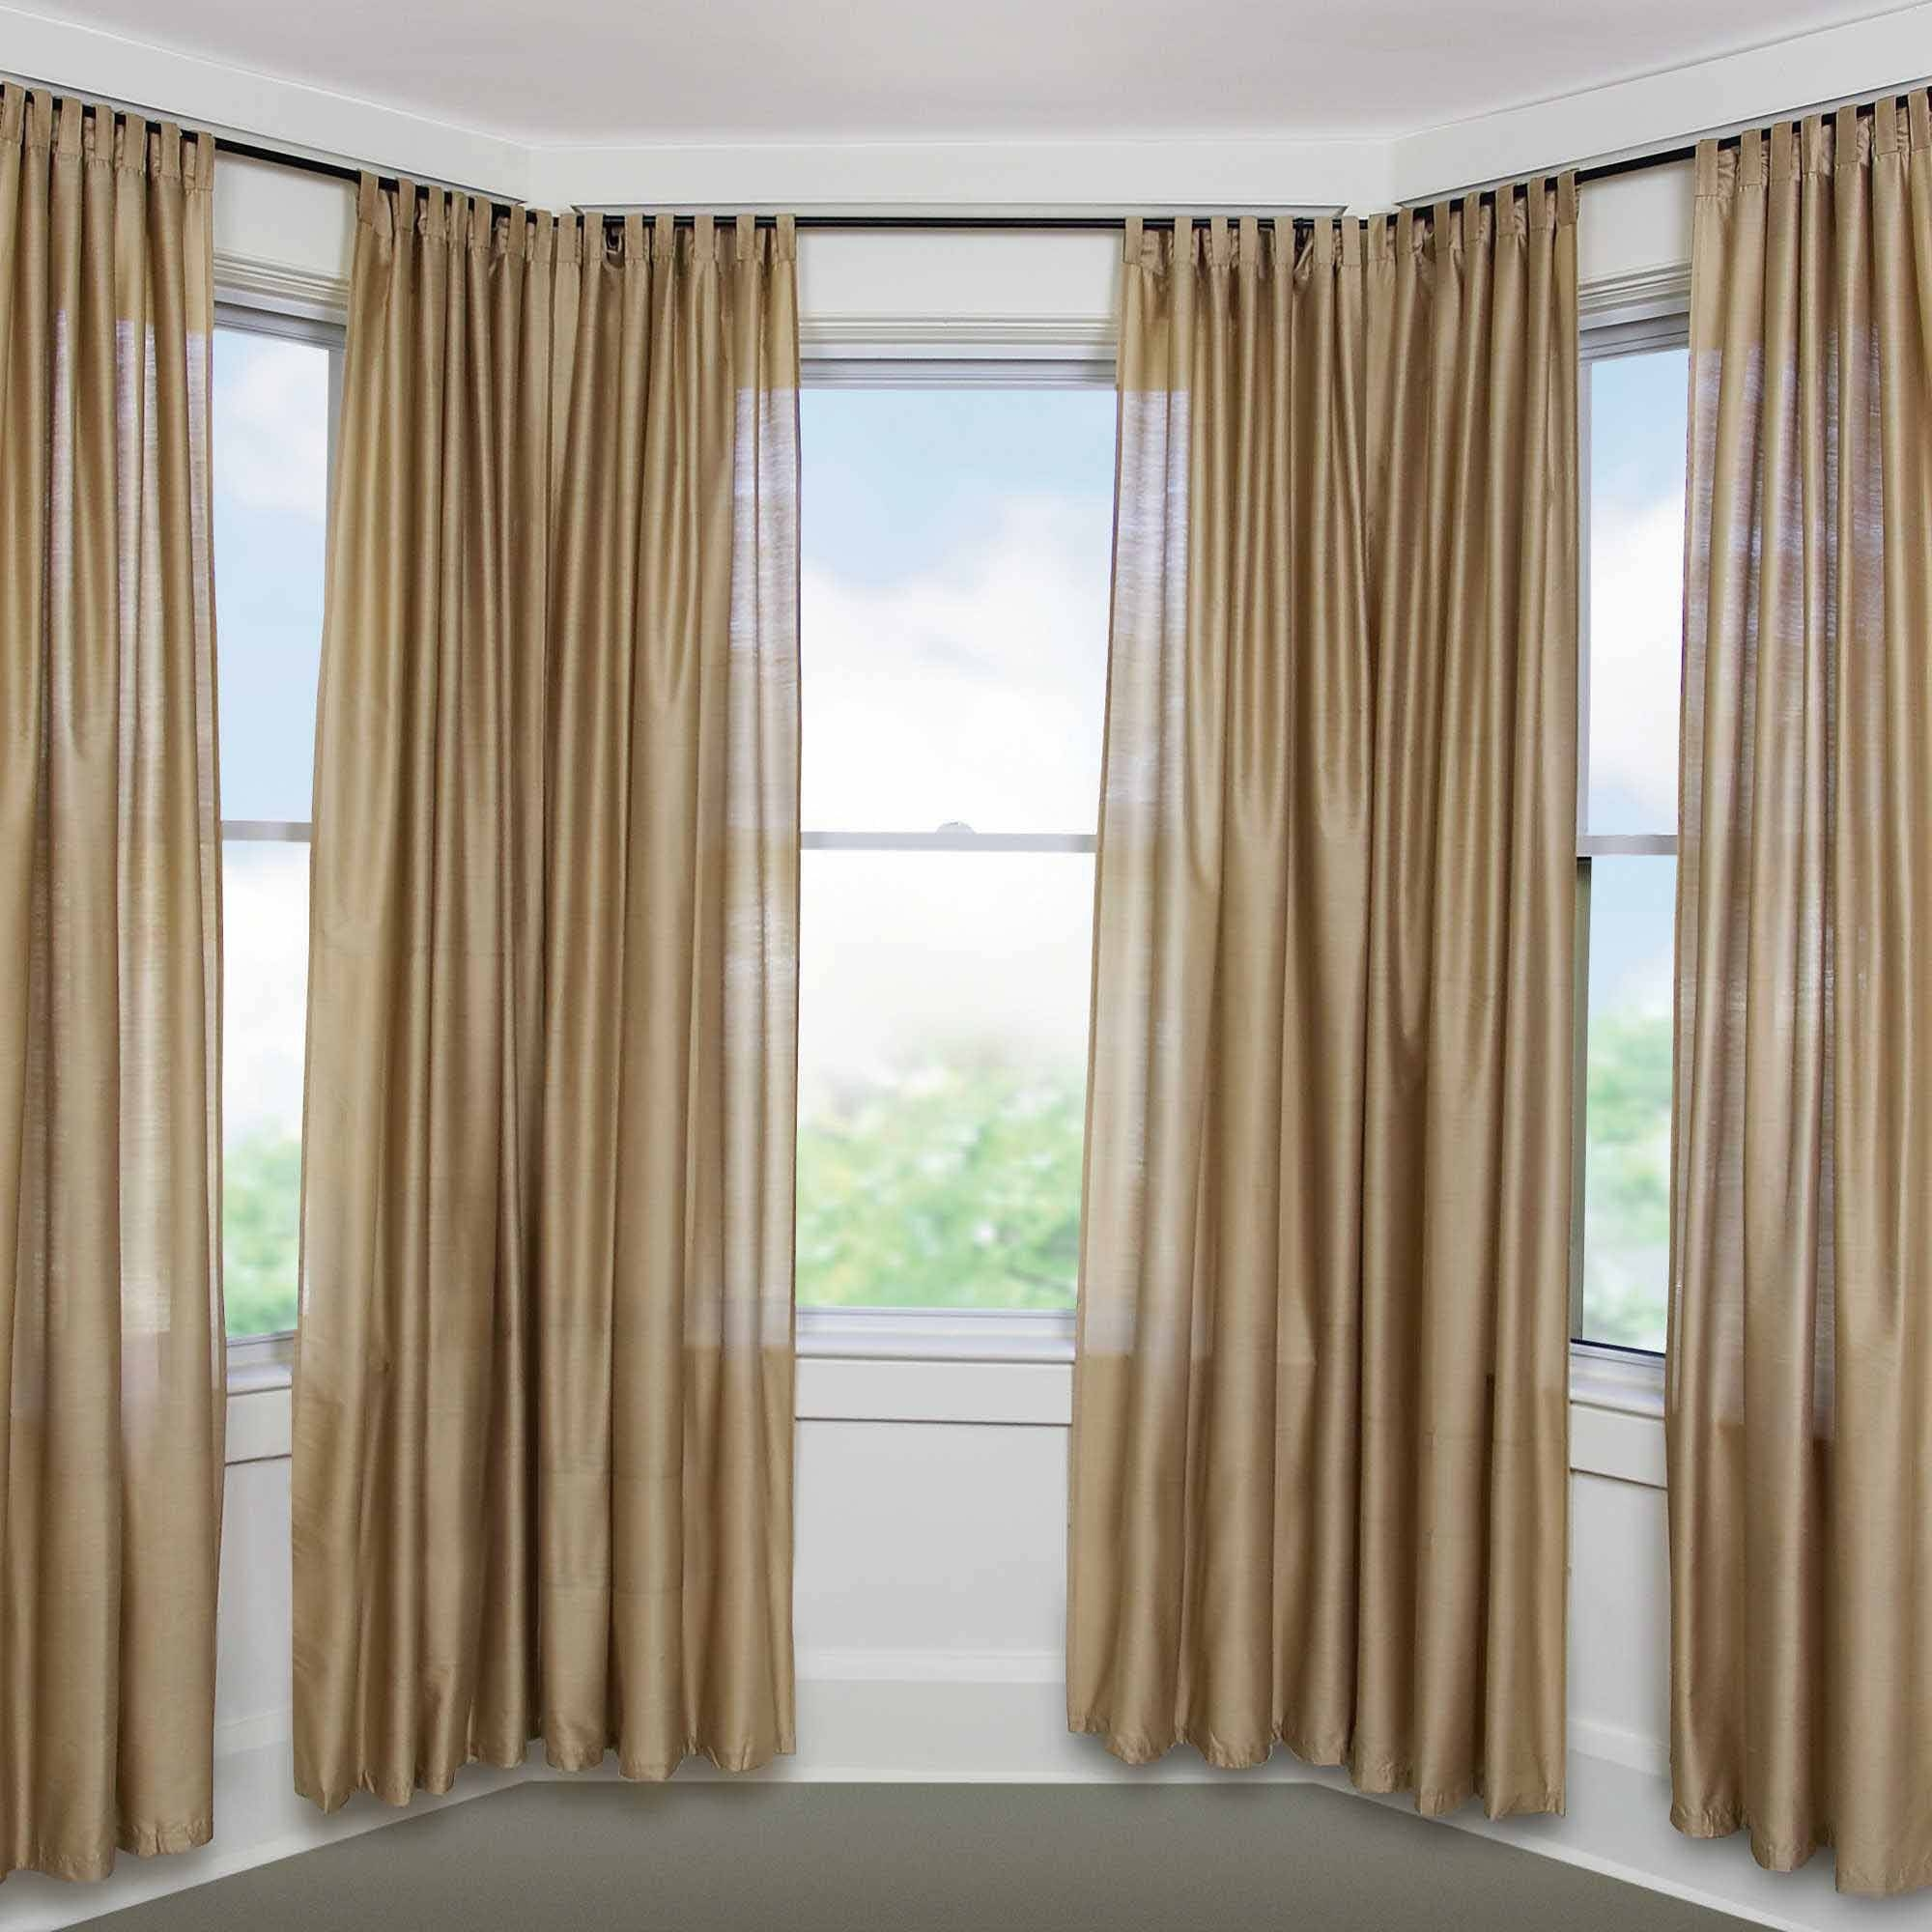 Home Design Ideas Curtains 28 Images Home Curtain Simple: 15 Collection Of Blackout Curtains Bay Window